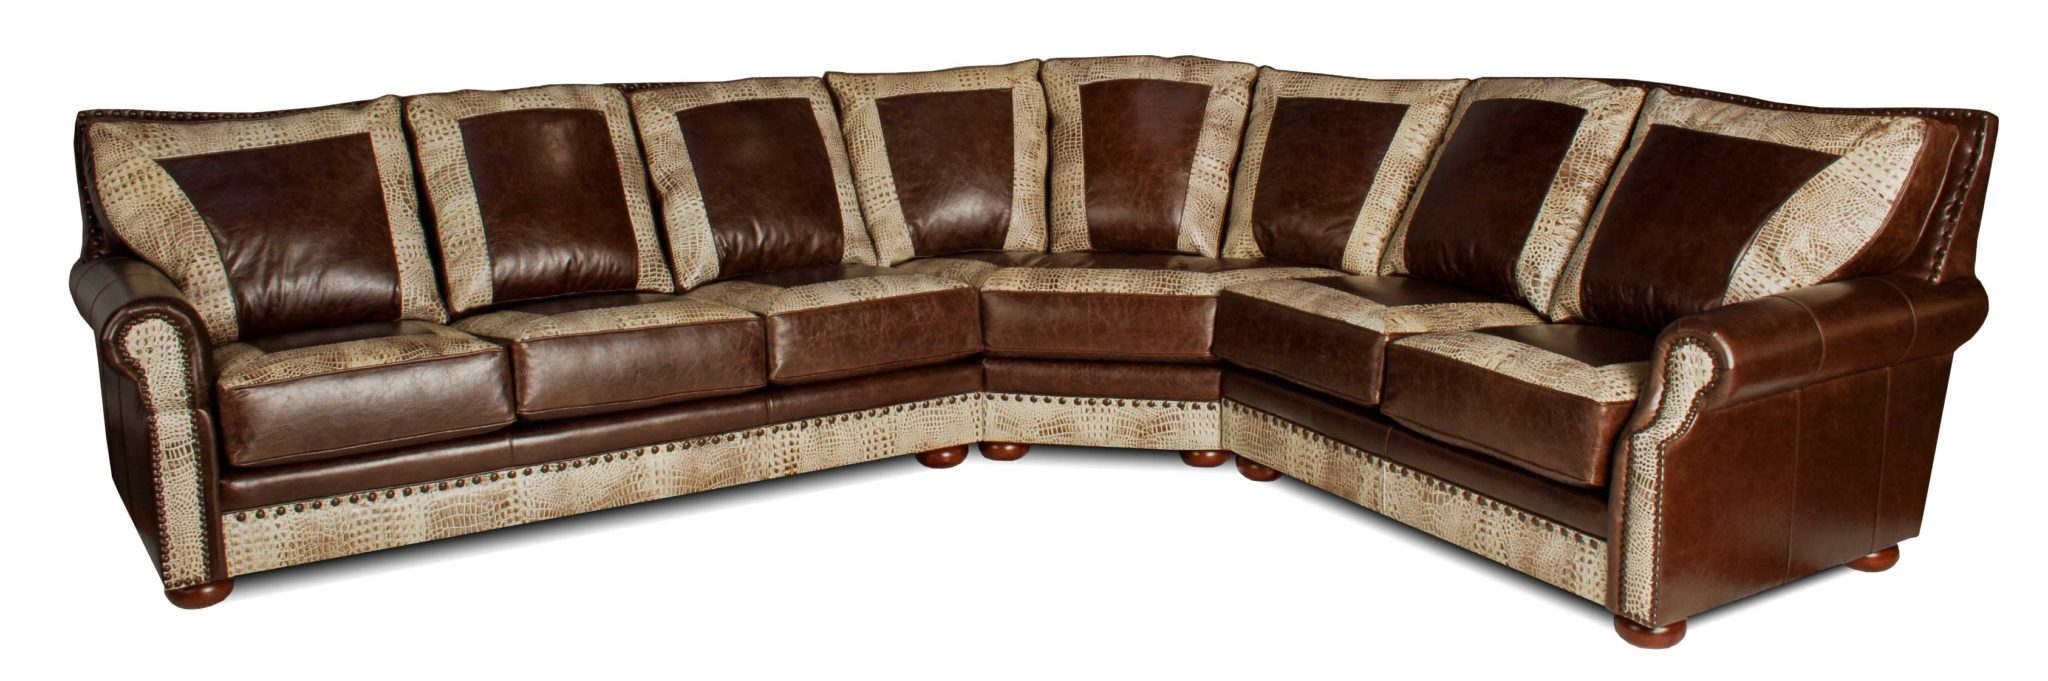 Leather Creations Leather Furniture Recliners